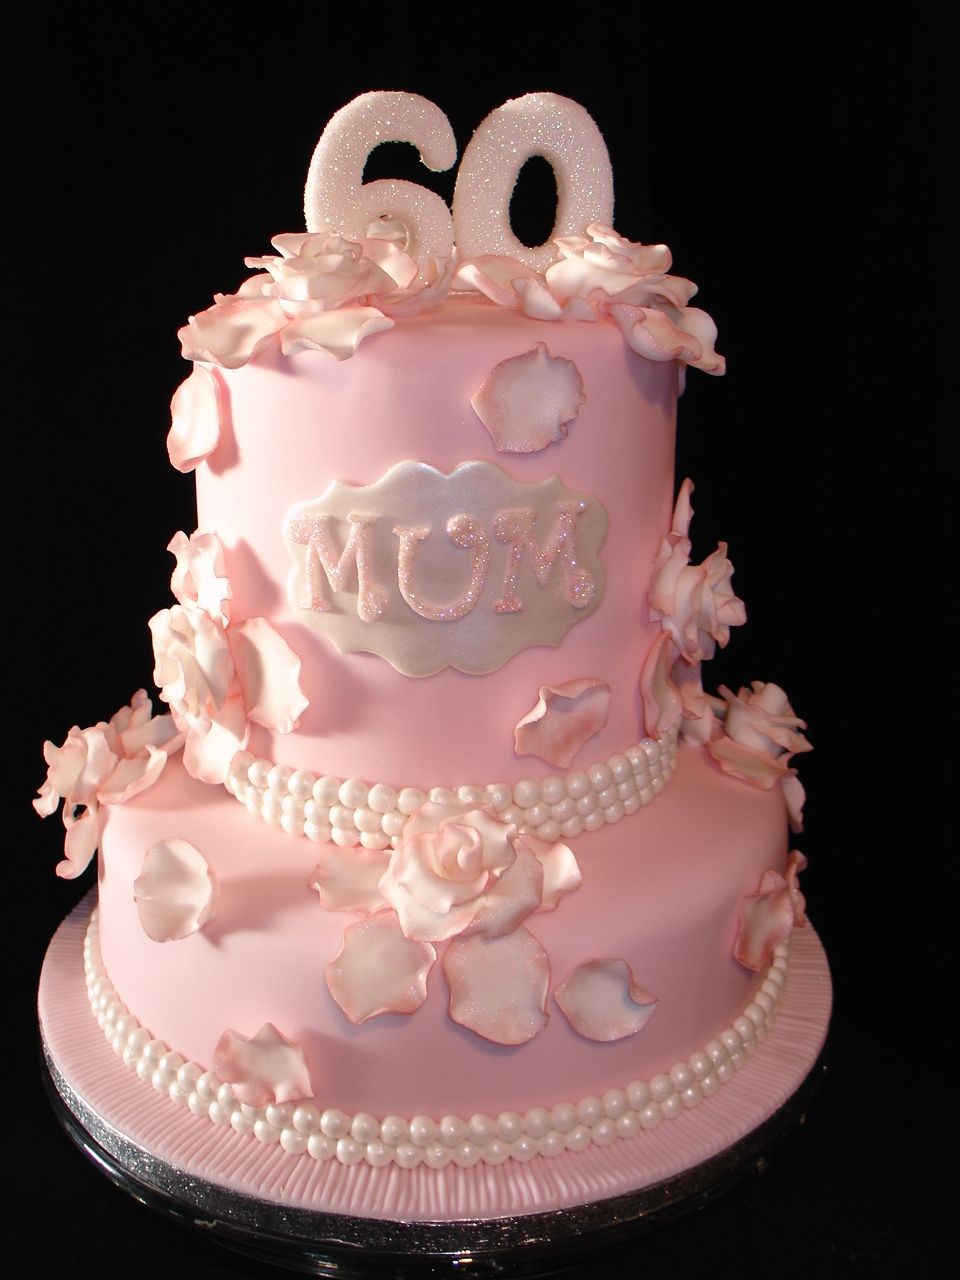 Pale Pink 60th Birthday Fondant Cake Cakes